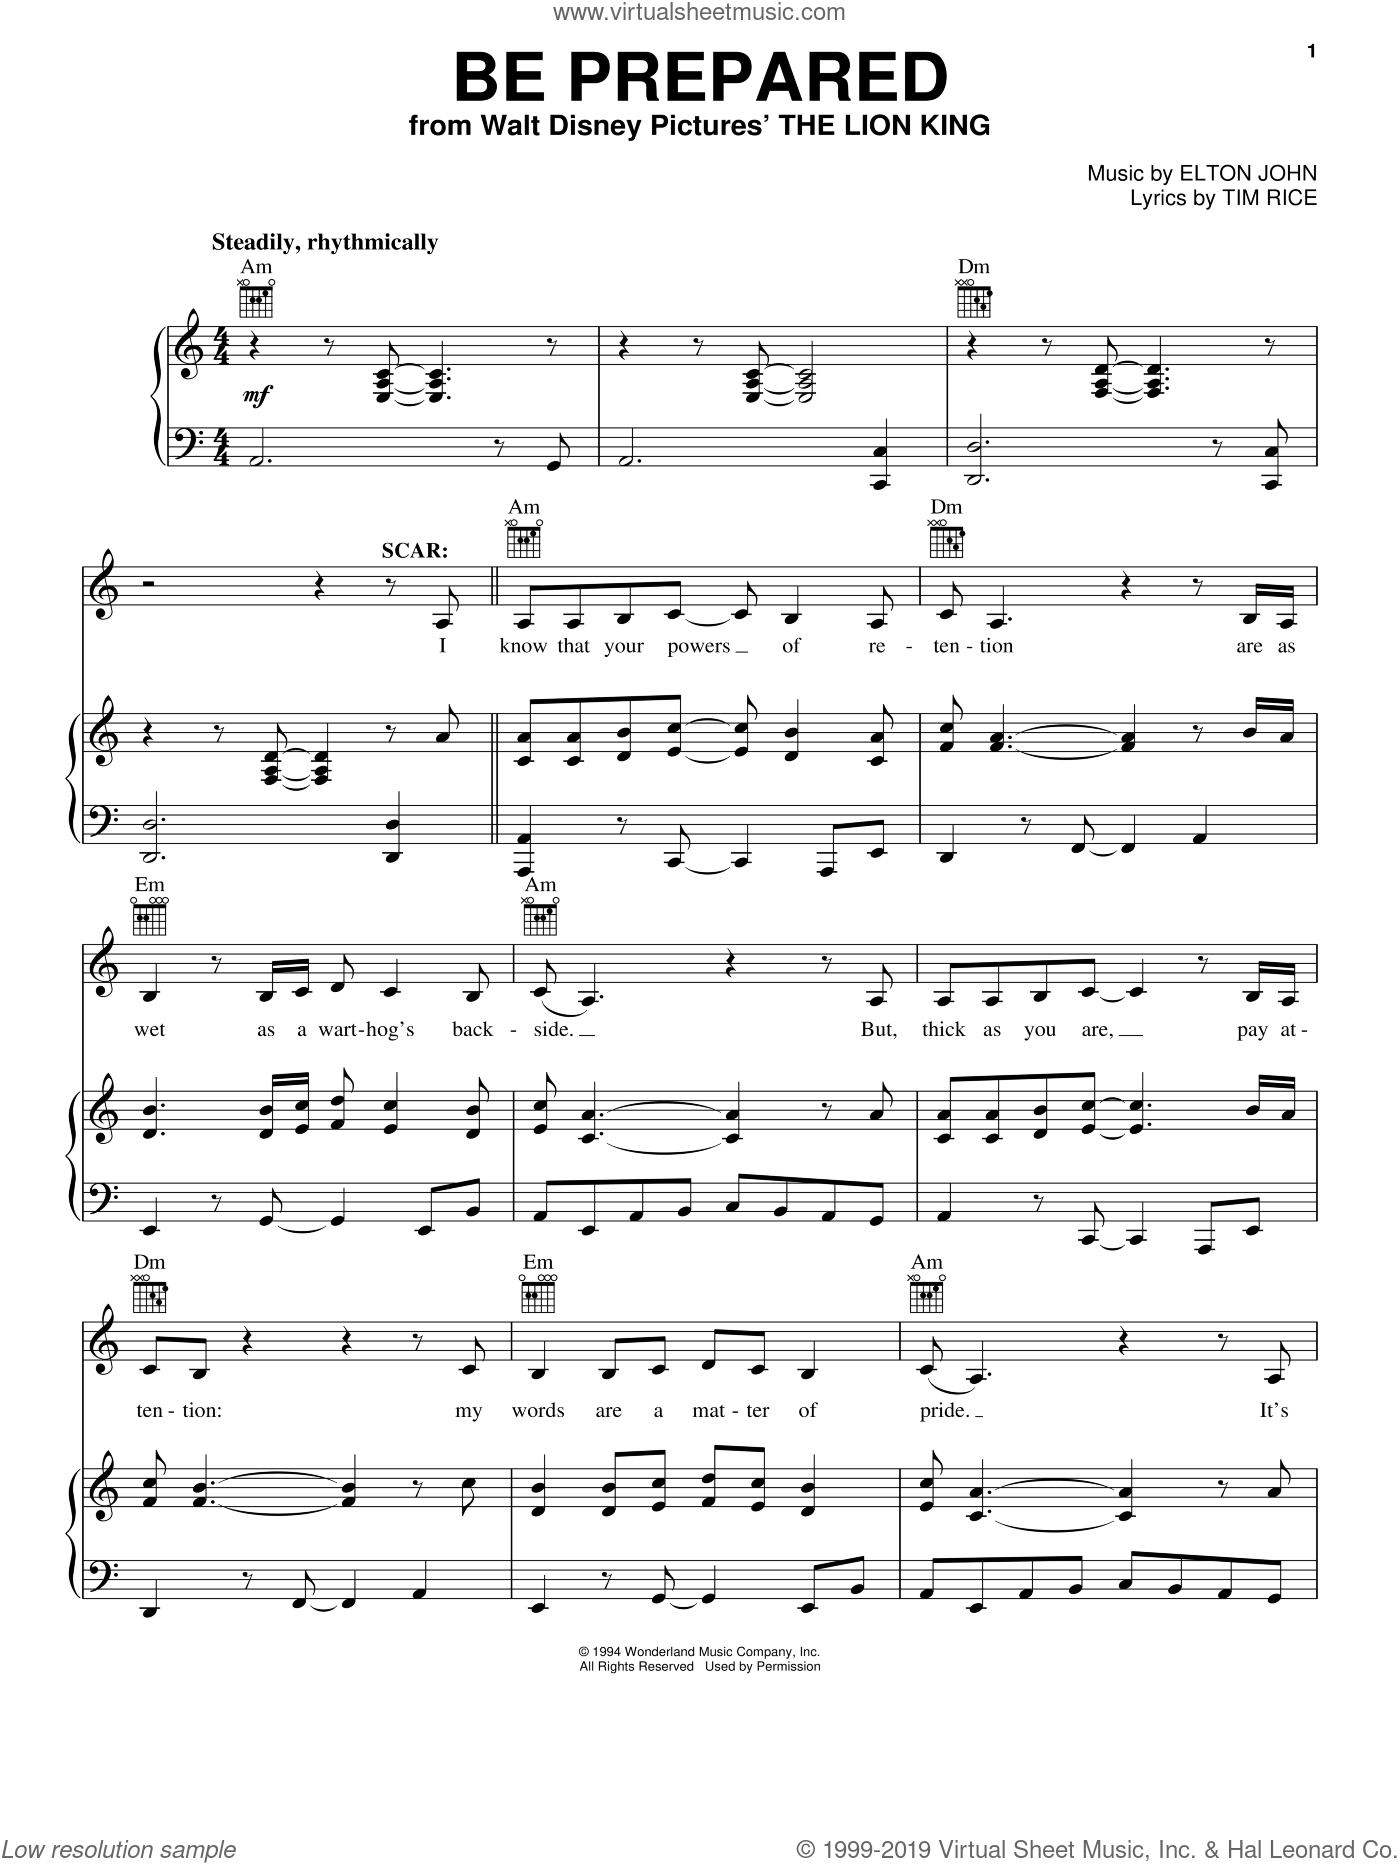 Be Prepared sheet music for voice, piano or guitar by Elton John